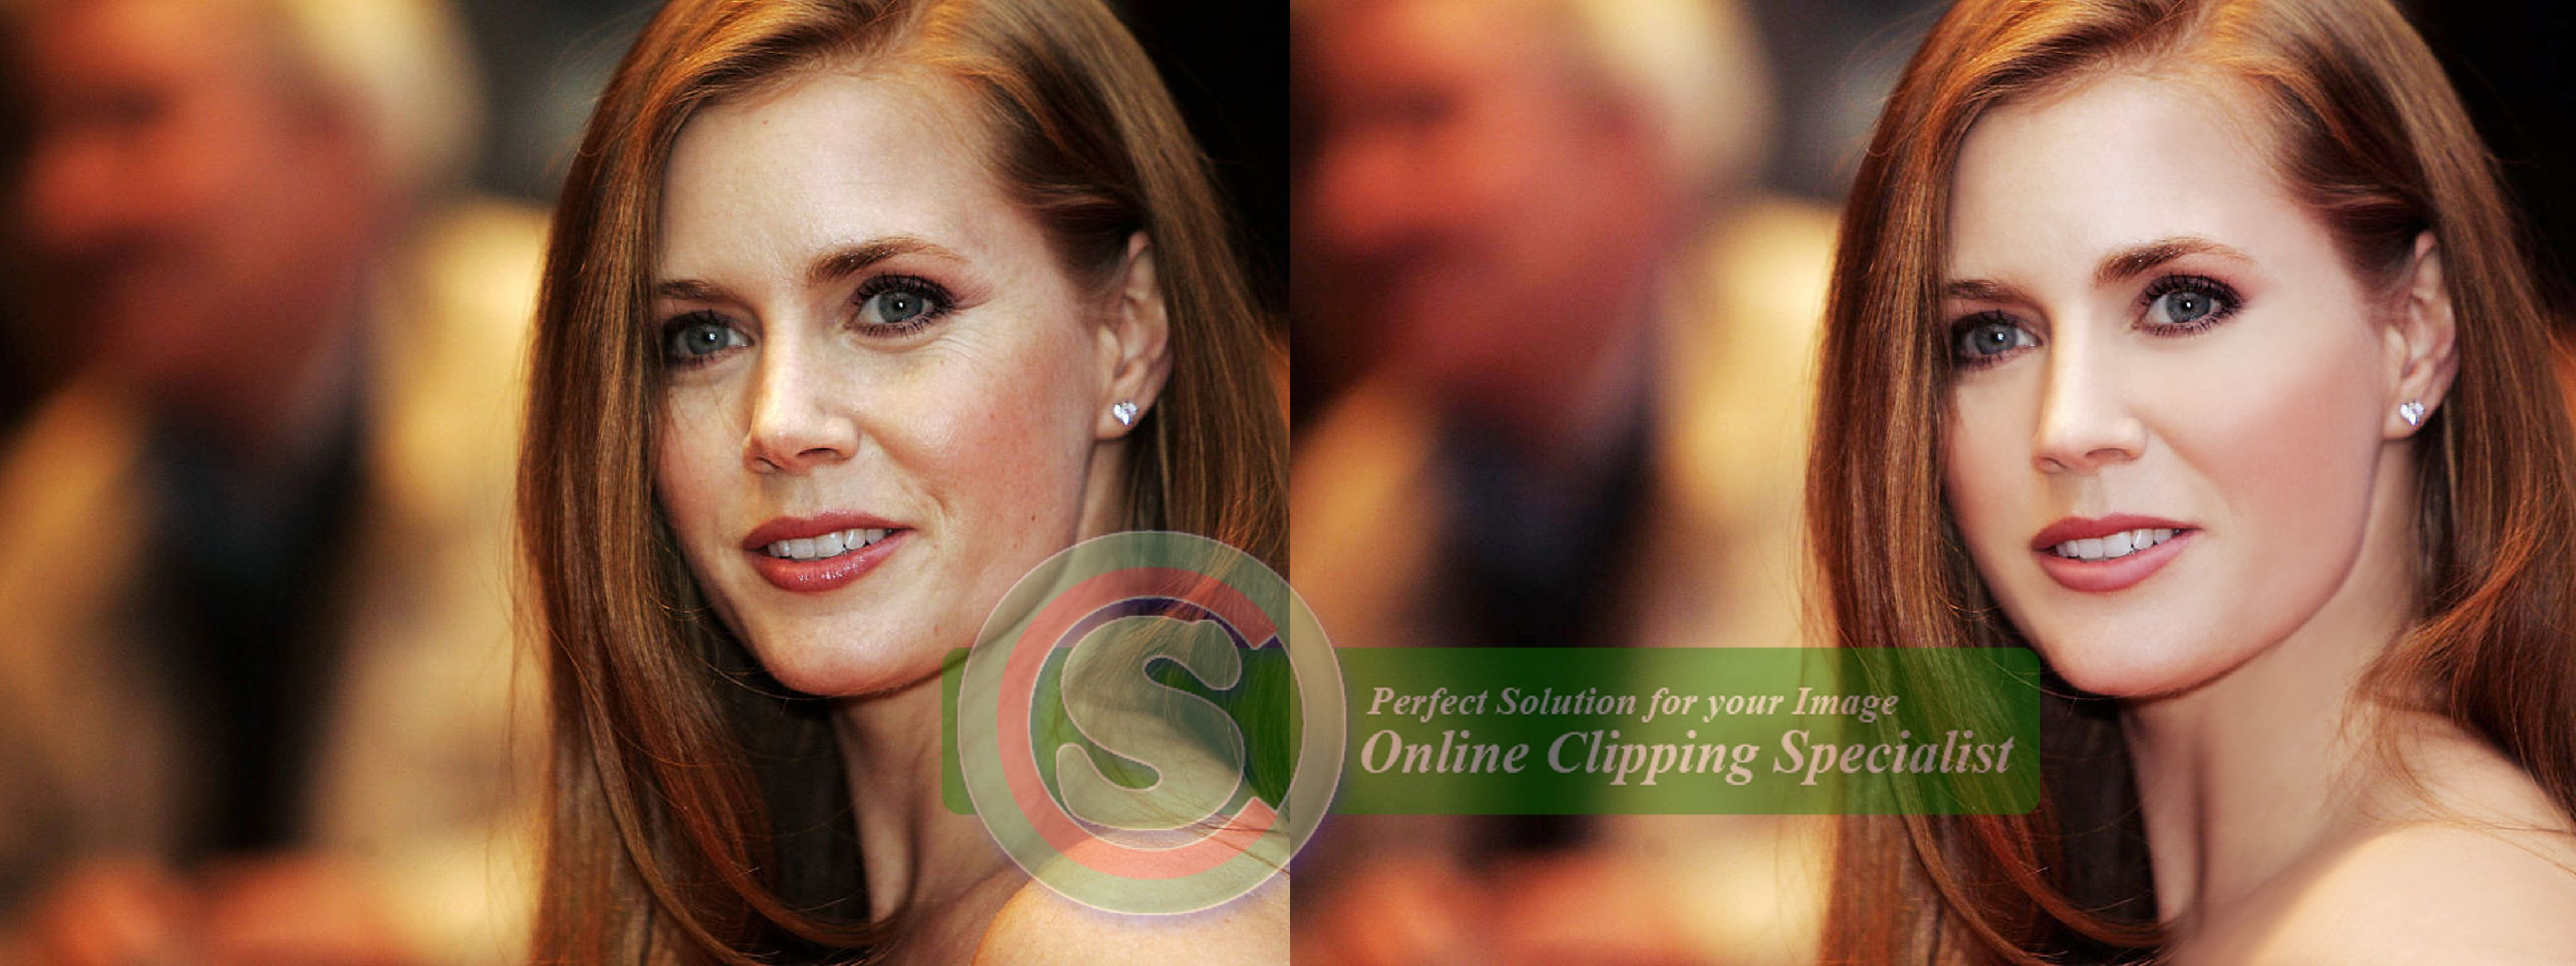 online clipping specialist provides retouching